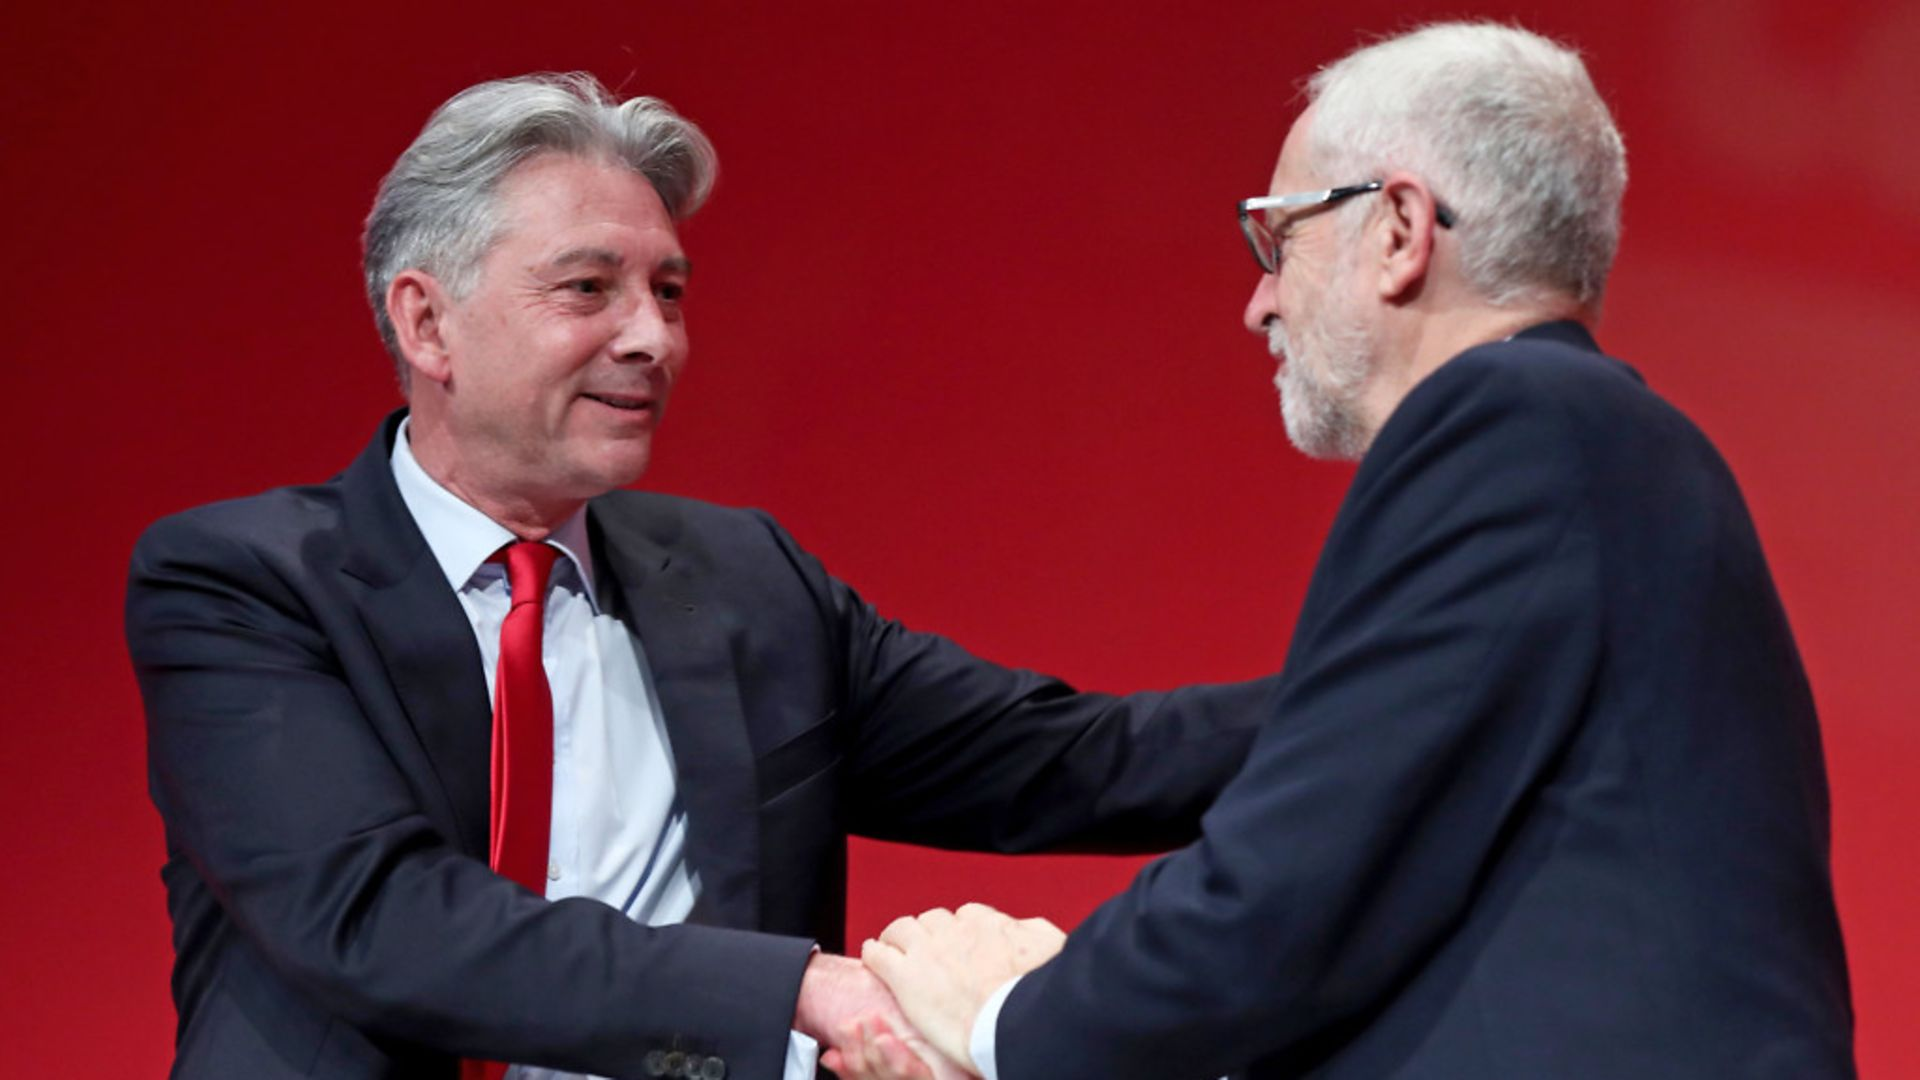 Richard Leonard (left) with Jeremy Corbyn, following a speech during the Labour Party Conference - Credit: PA